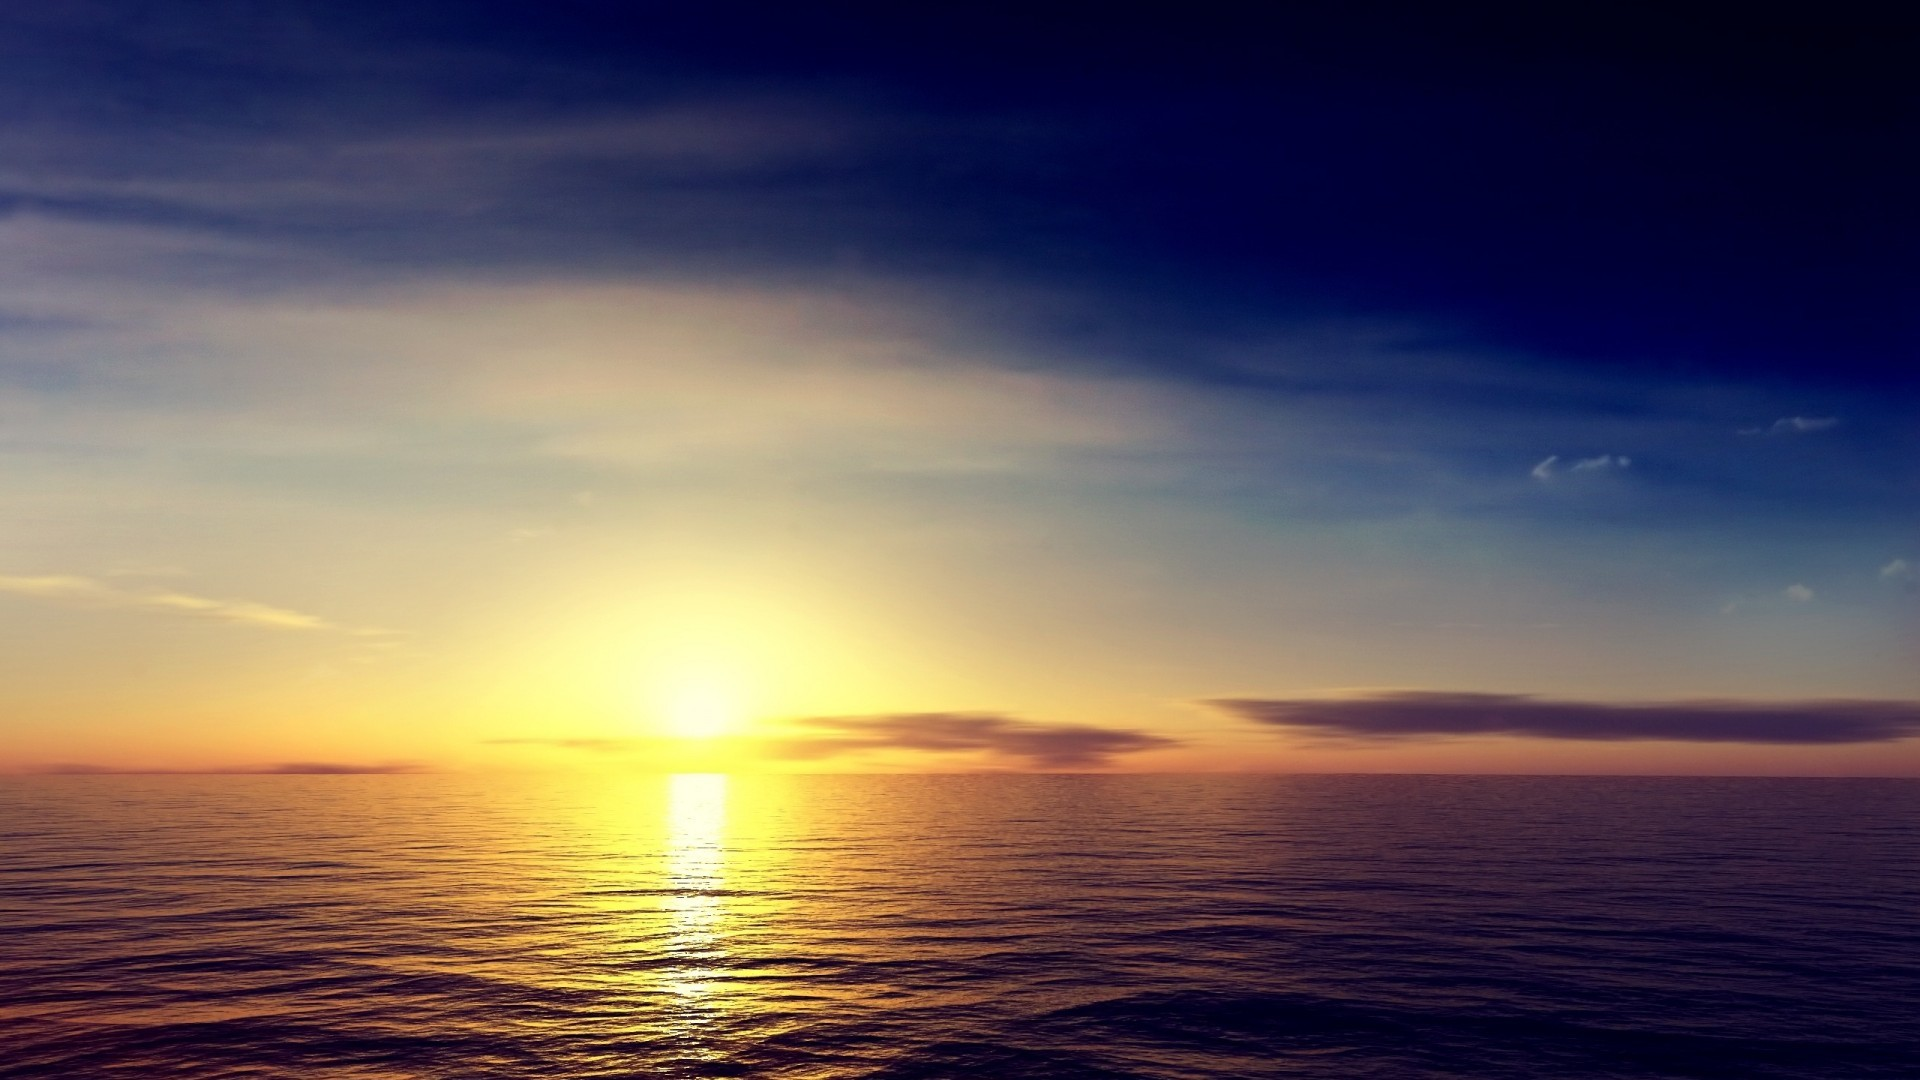 1920x1080 Ocean Sunrise Wallpaper